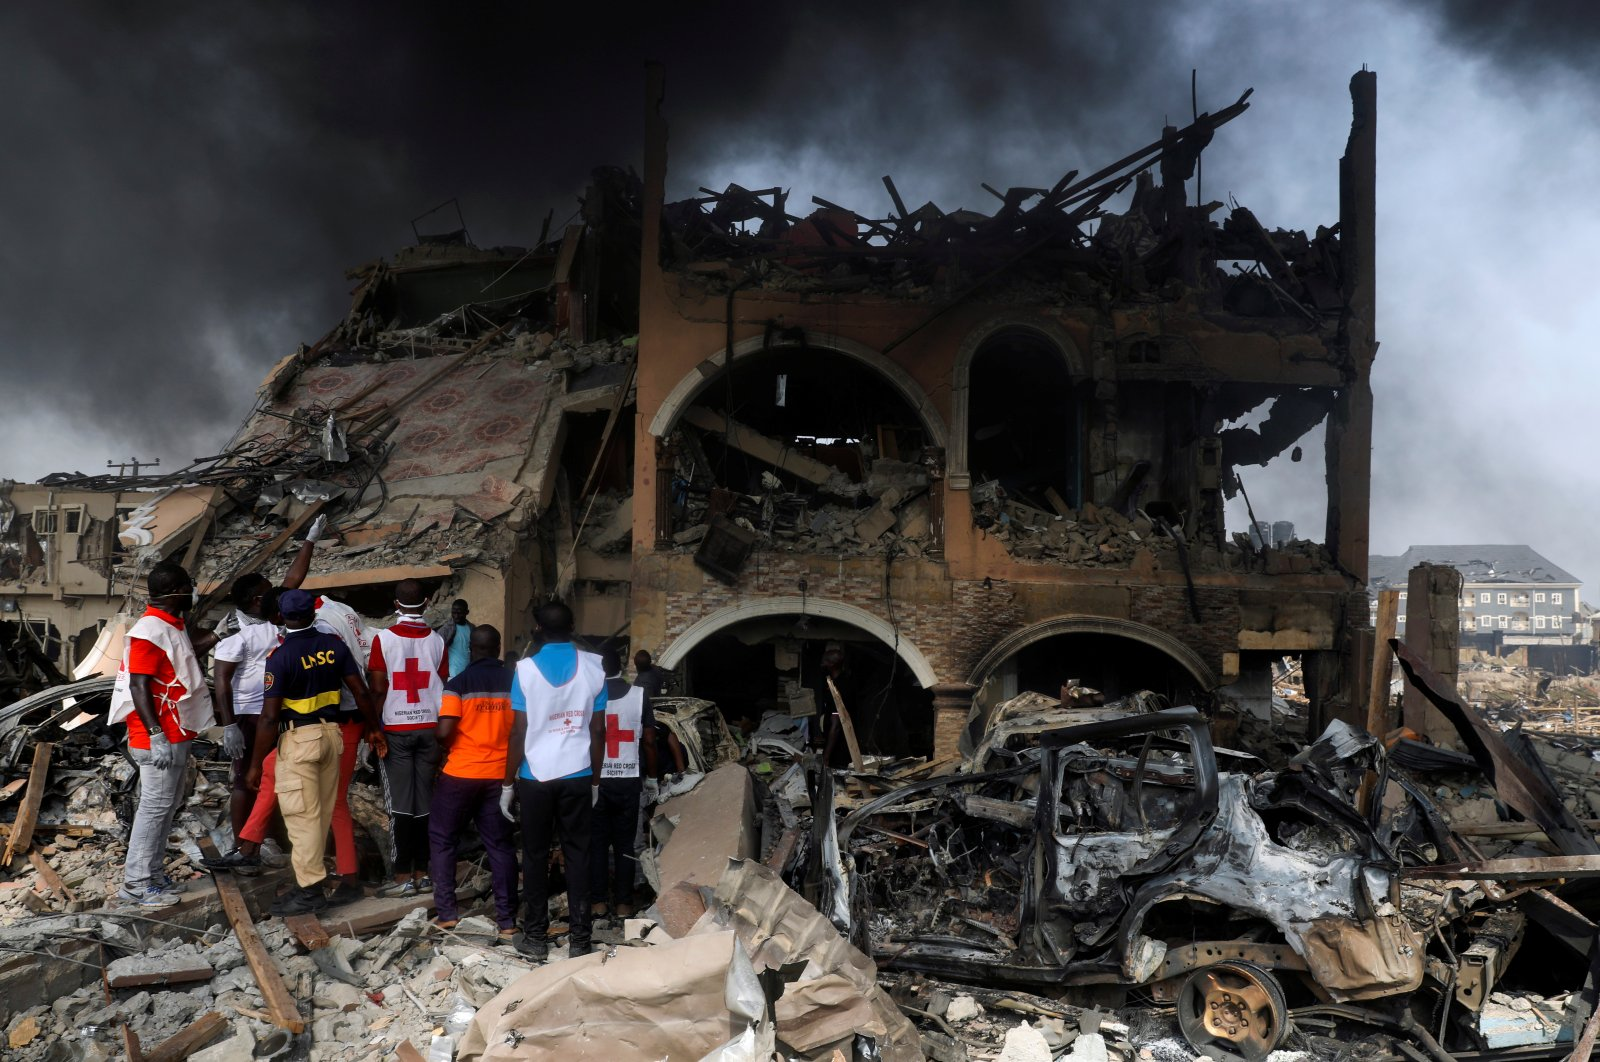 Paramedics and security men observe a building that was damaged by the pipeline explosion at Abule Ado in Lagos, Nigeria, March 15, 2020. (Reuters Photo)